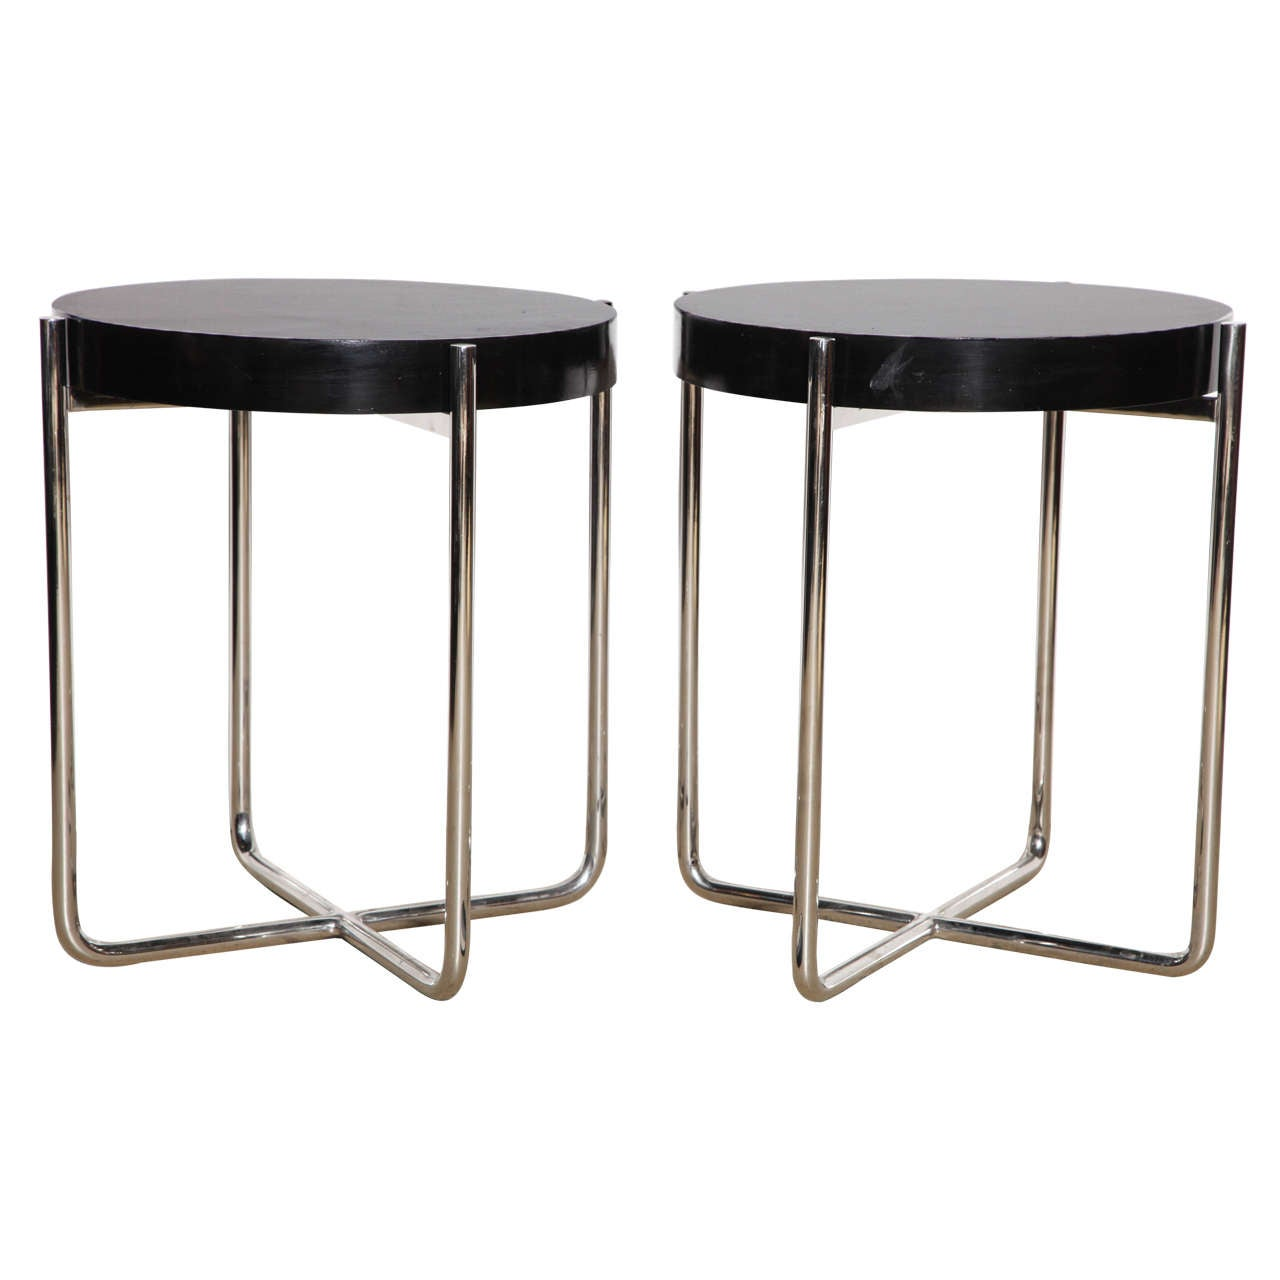 Pair Of Ludwig Mies Van Der Rohe End Tables At 1stdibs